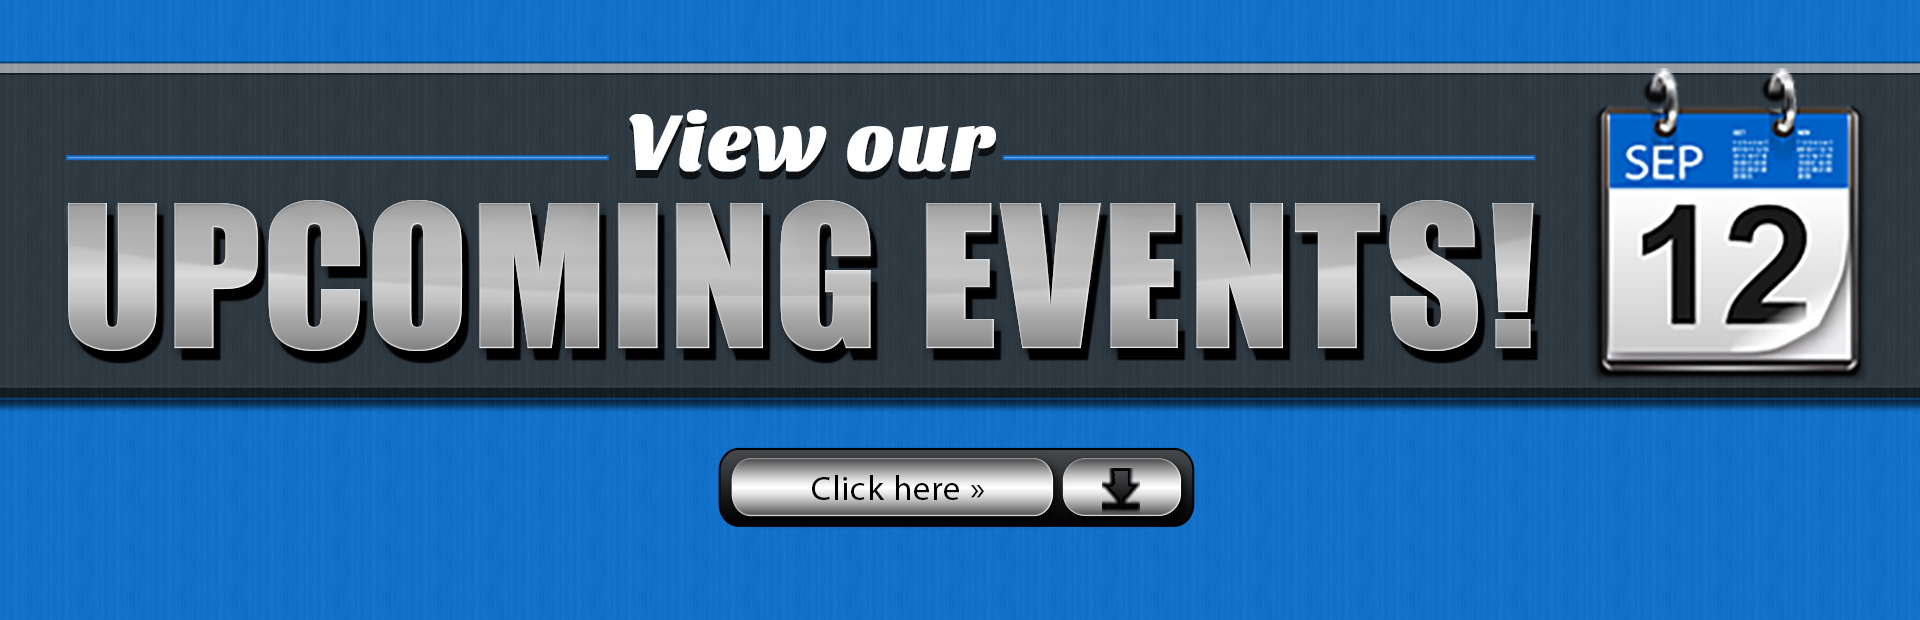 Click here to view our upcoming events!